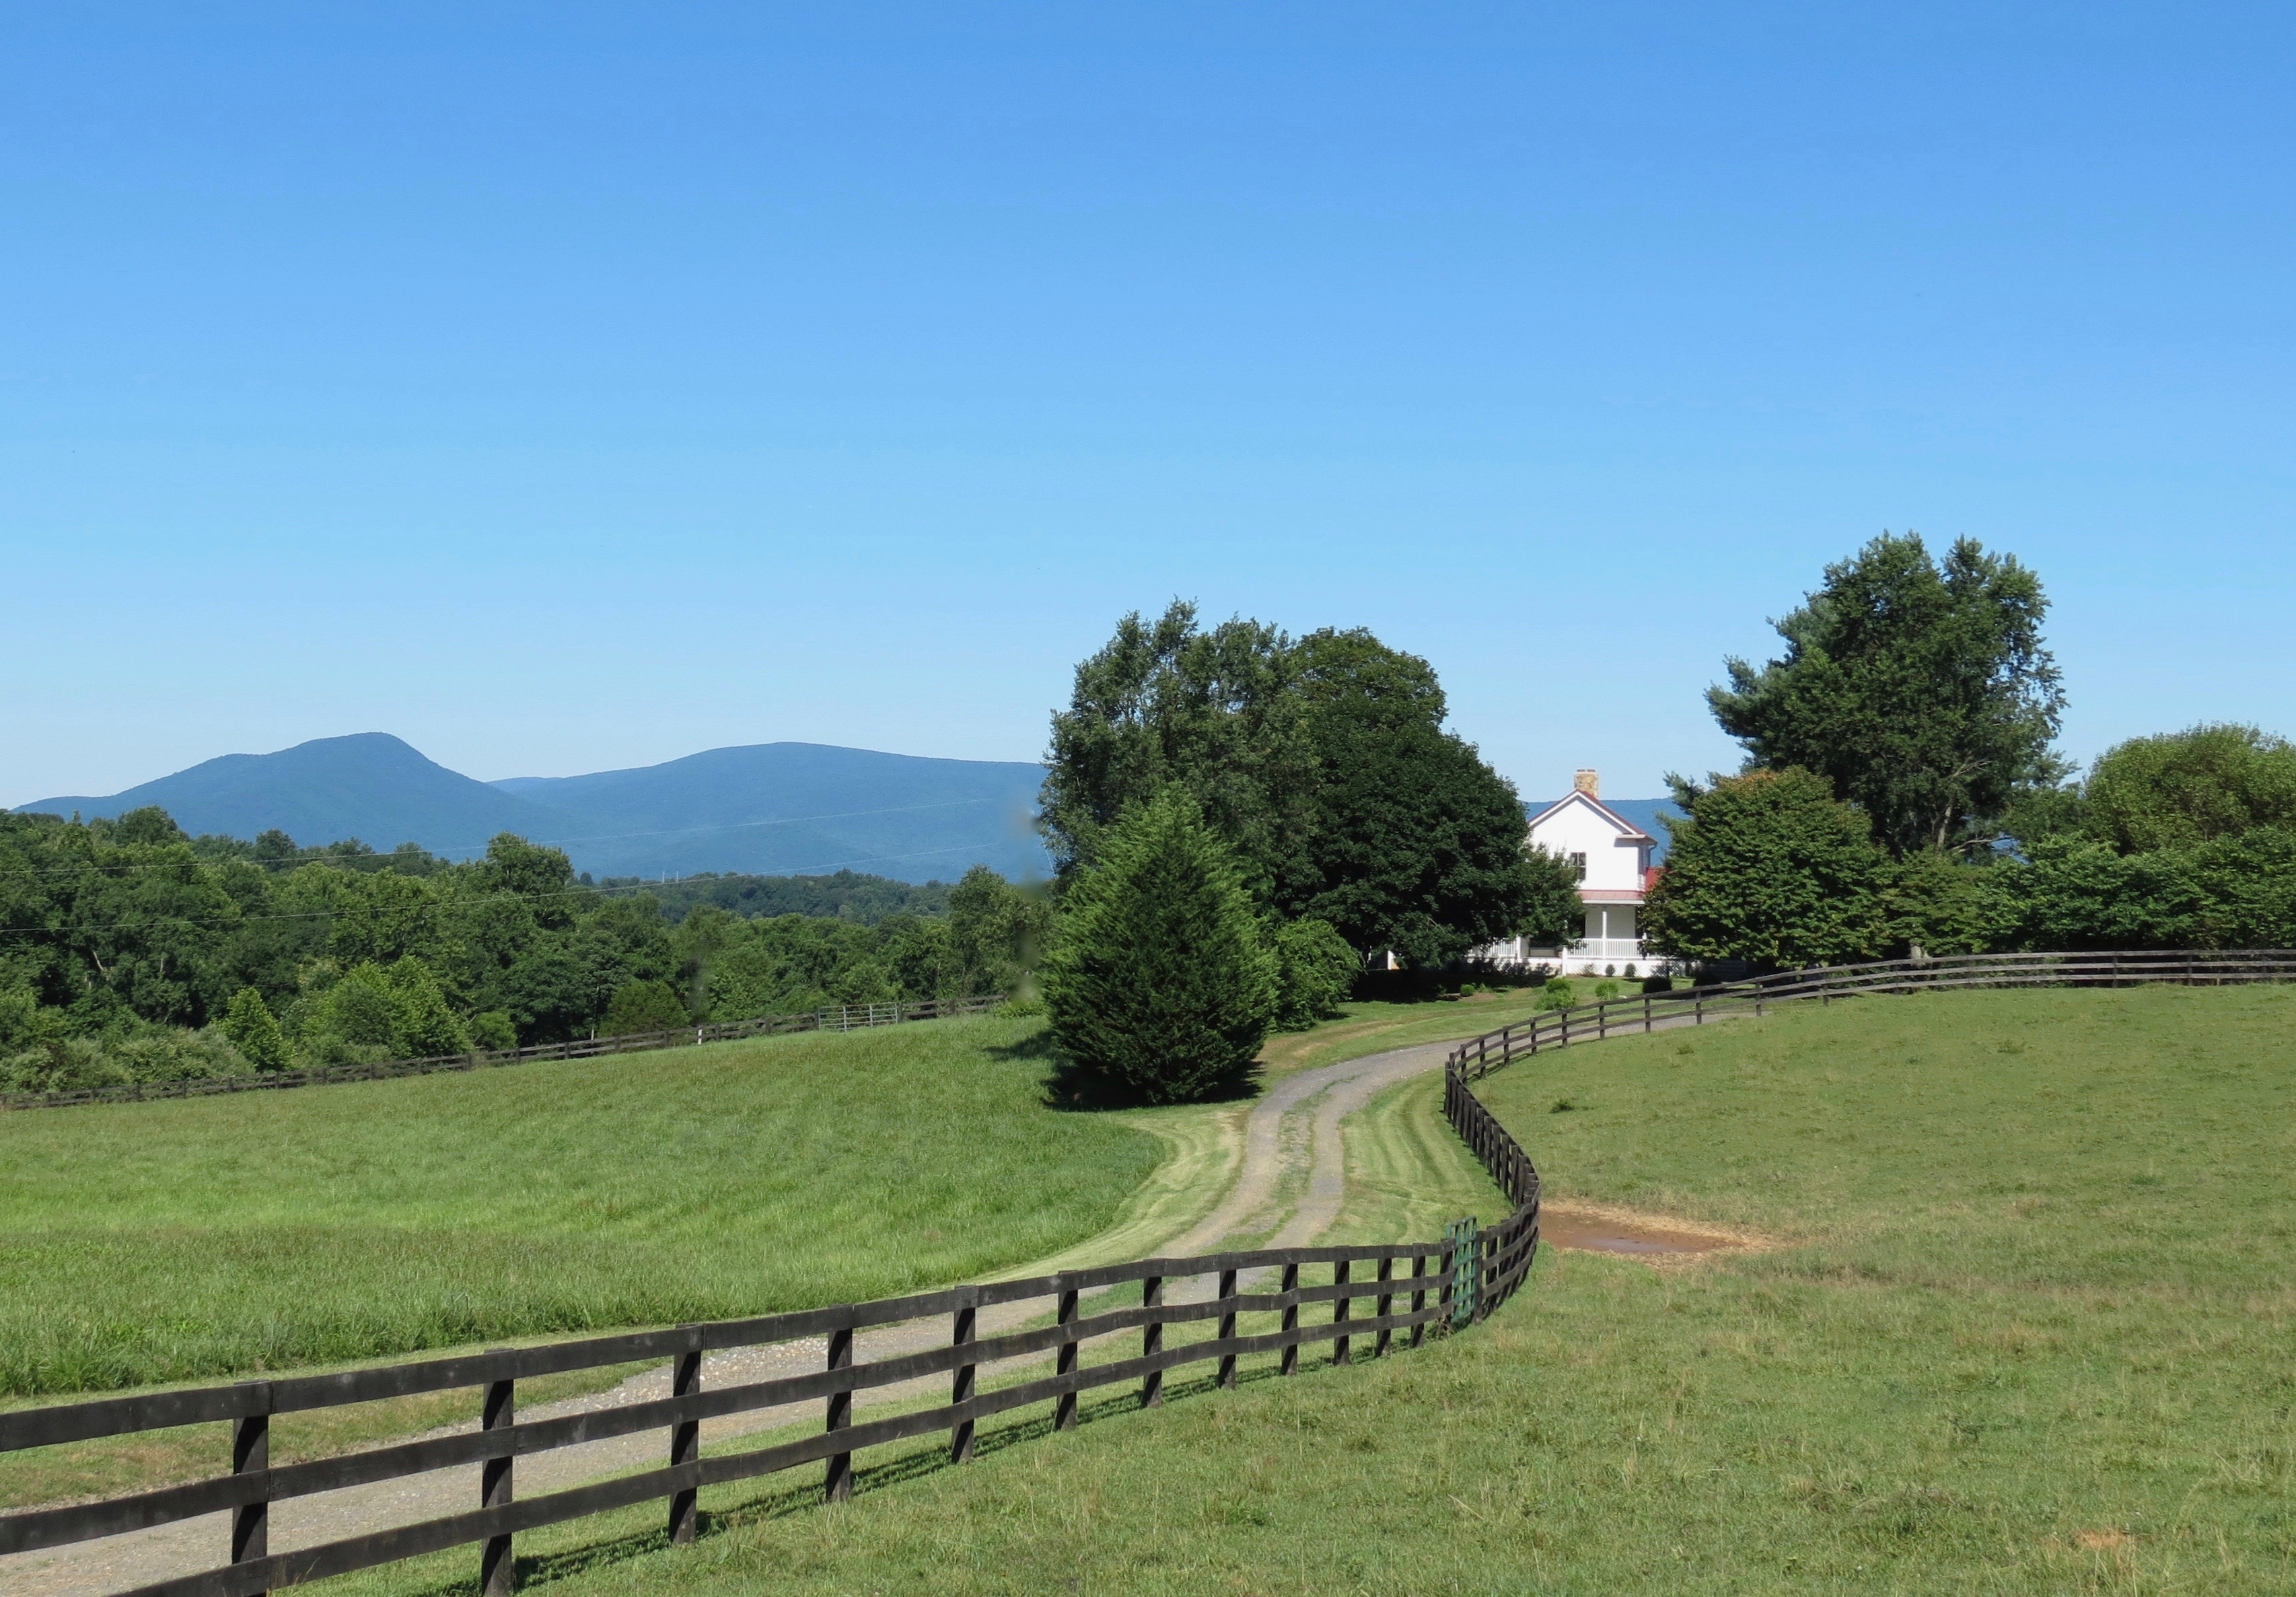 SOLD: 22 acres, farmhouse, barns, view